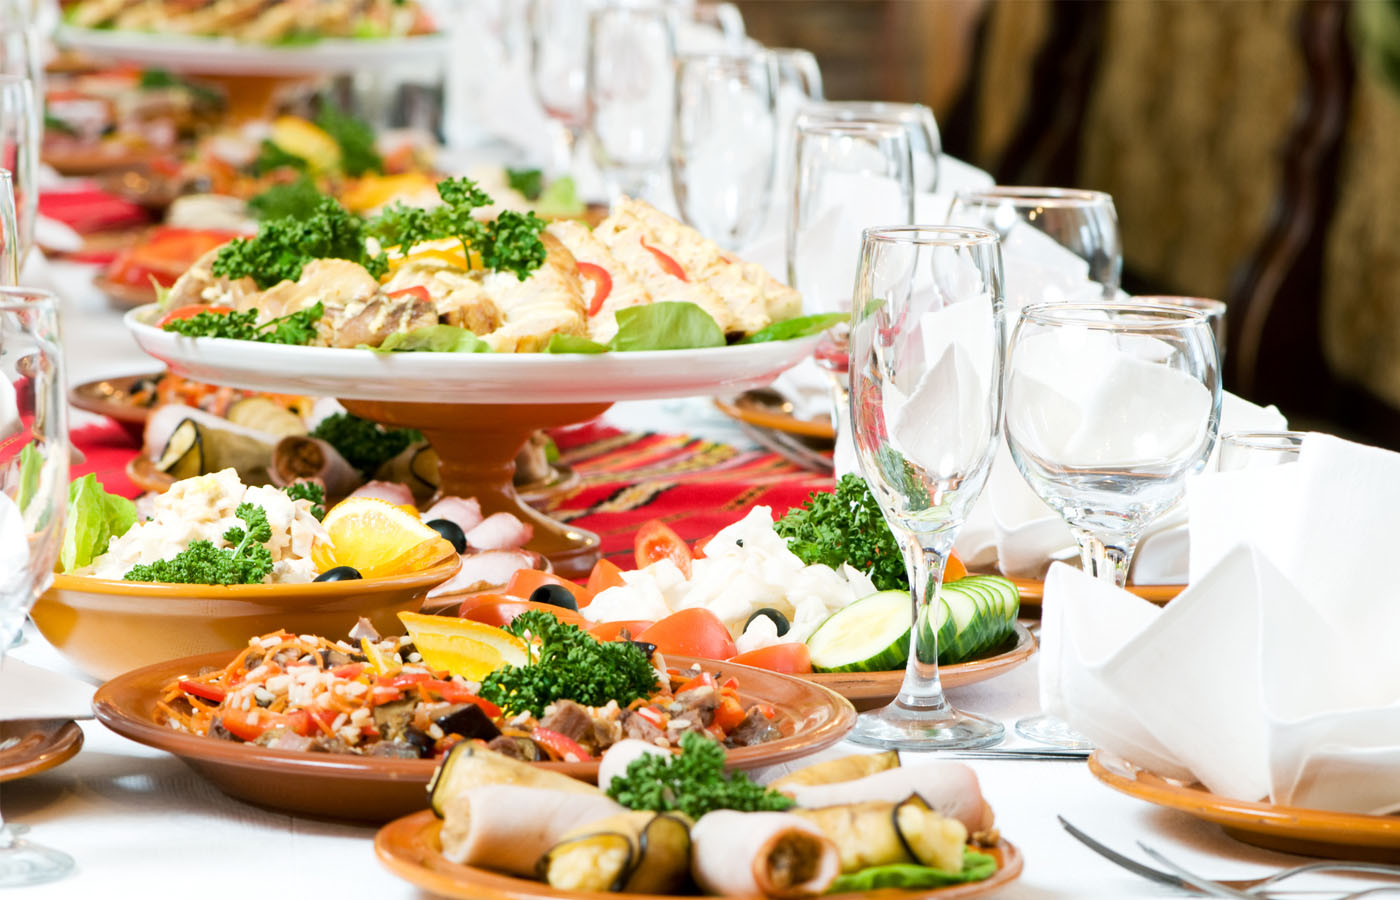 Catering Services in Shimla | Red Tag Caterers | Catering services in Shimla, best catering services in Shimla, Veg Catering services in Shimla, outdoor Catering services in Shimla, non-veg Catering services in Shimla, - GL43904